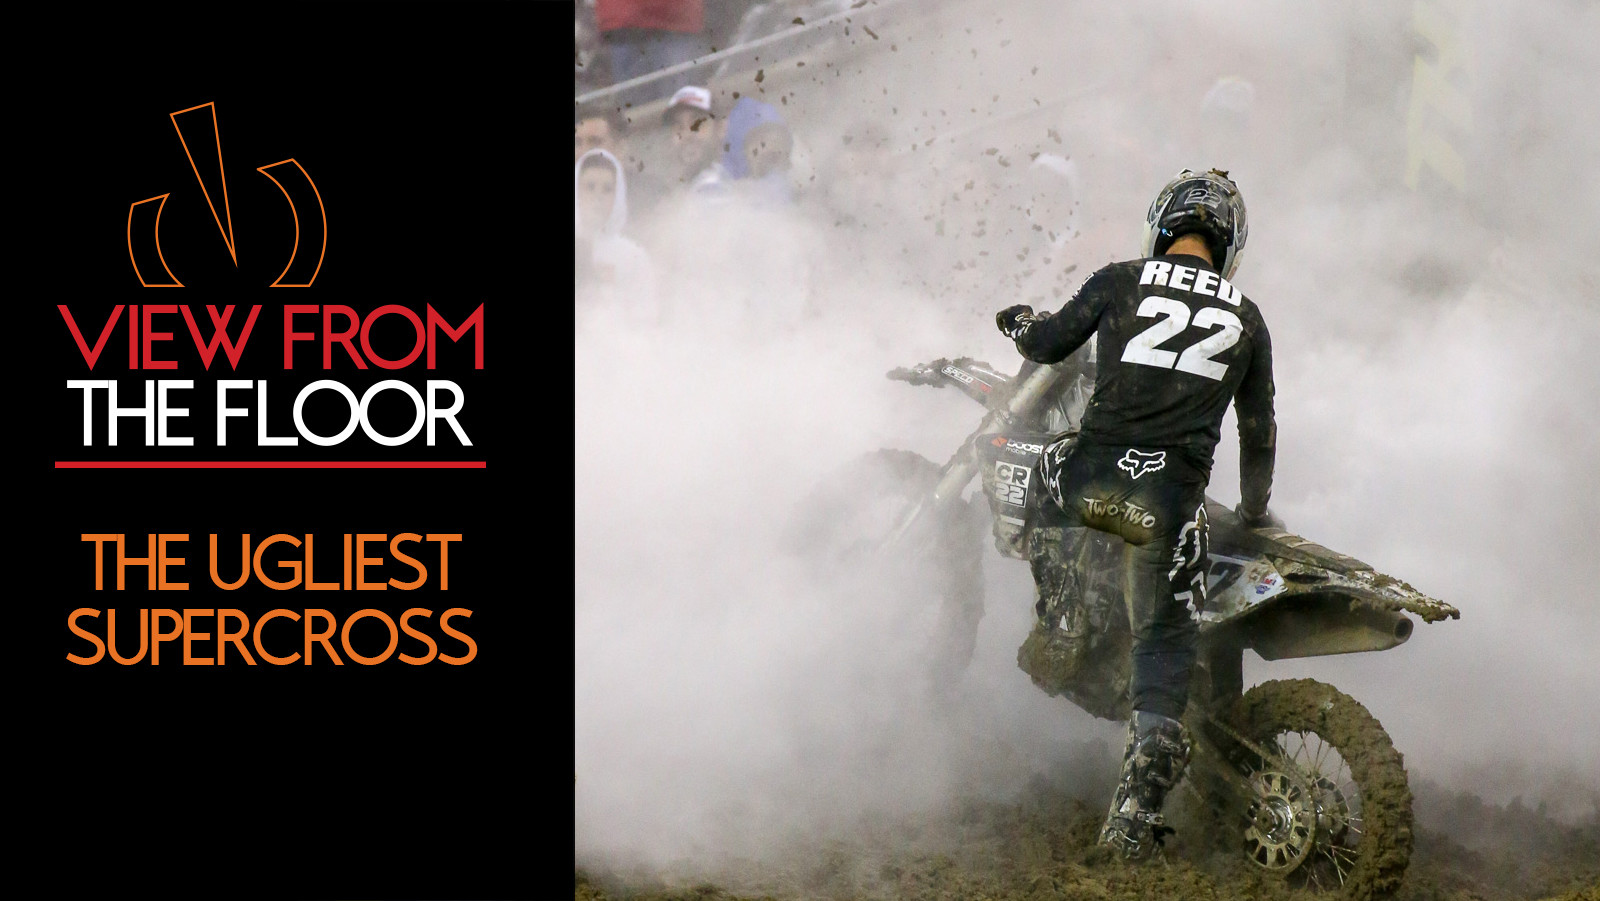 View From the Floor: The Ugliest Supercross